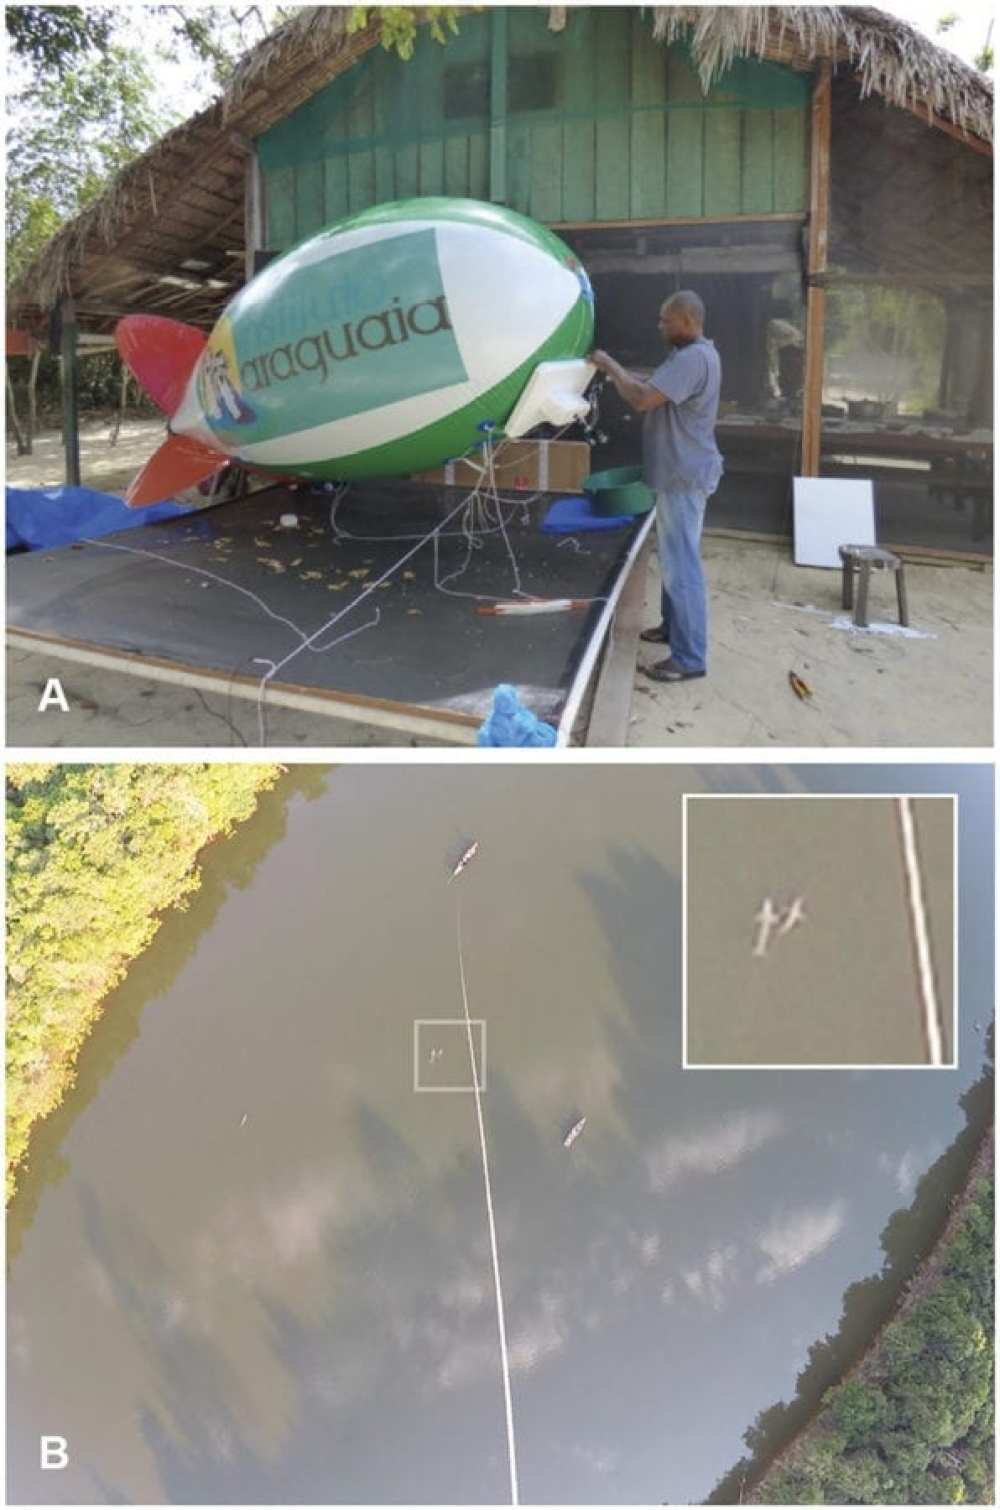 River dolphin aerial survey using the blimp. (A) Field assistant makes adjustments of the styrofoam system that held the GoPro camera on the blimp. (B) Screenshot of a video-recorded by the blimp camera during a survey of Inia araguaiaensis in the sector Estir~ao. Three dolphins are visible: a pair showed in the enlarged picture detail, plus a solitary one further leftdown. It is also possible to spot the two boats deployed in the survey, the bottom-right one with observers performing the visual survey, and the top-left one responsible for holding the blimp through a tether line.